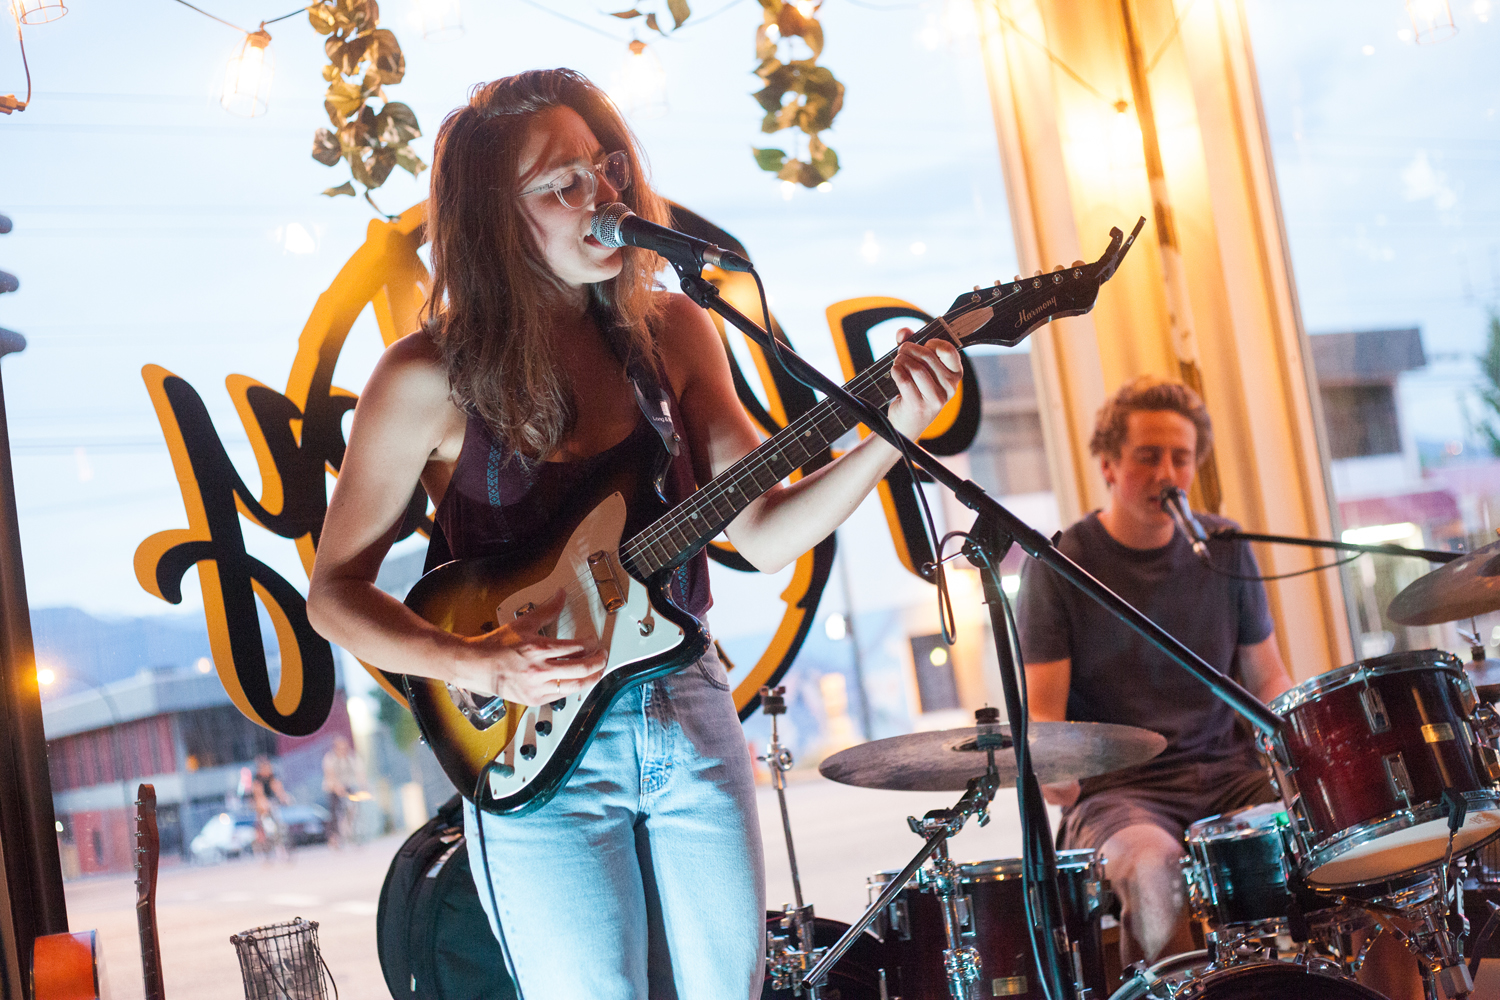 Jenny Banai @ The Heatley Christine McAvoy Photography